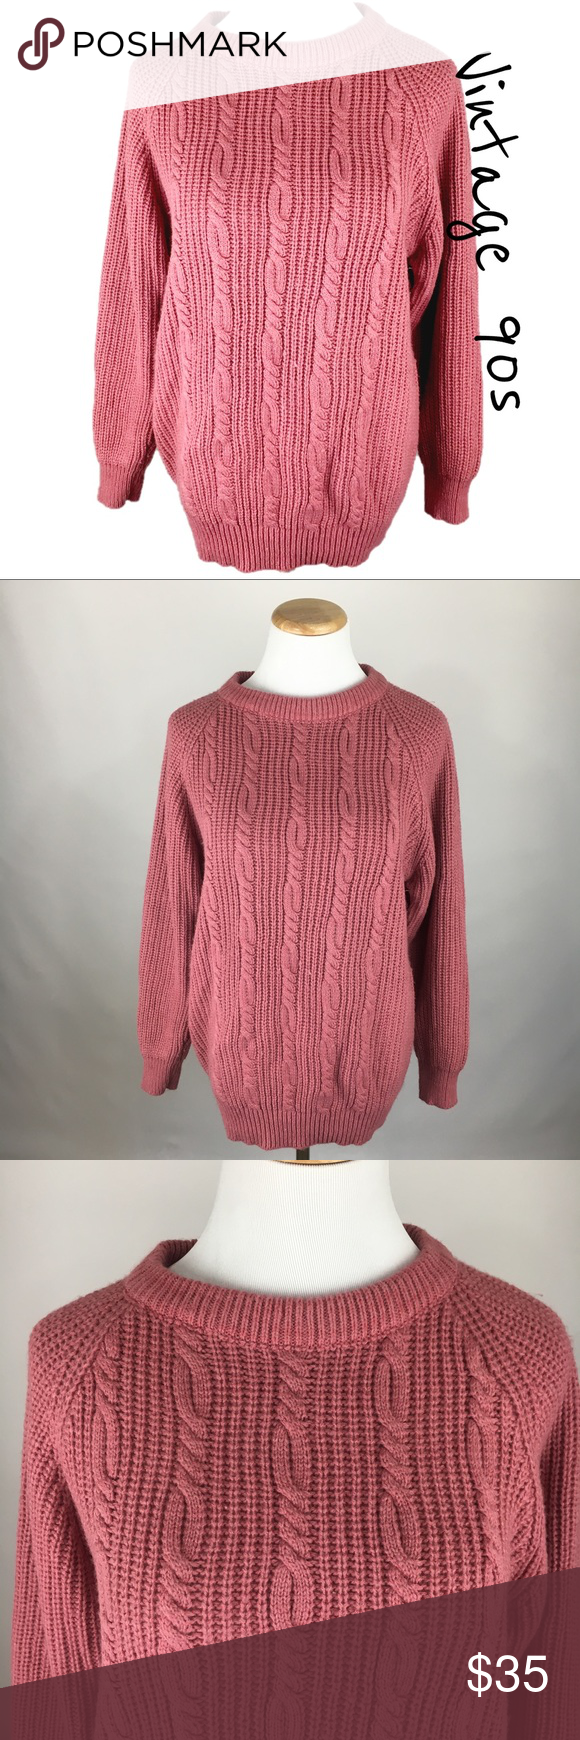 Vintage 90s Pink Oversized Knit Sweater Large | Cable knit ...